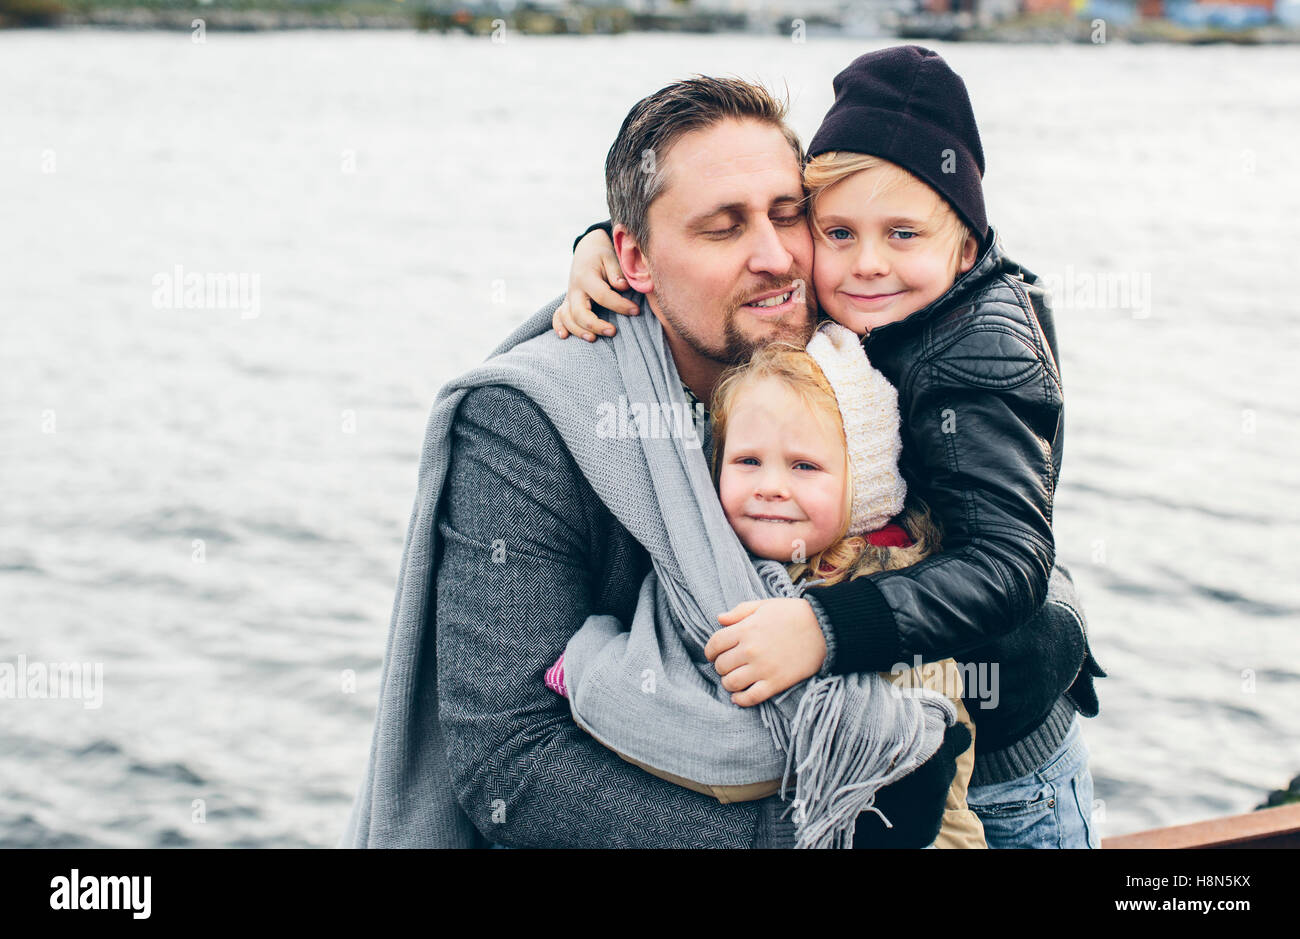 Father with two children (2-3, 6-7) by lake - Stock Image